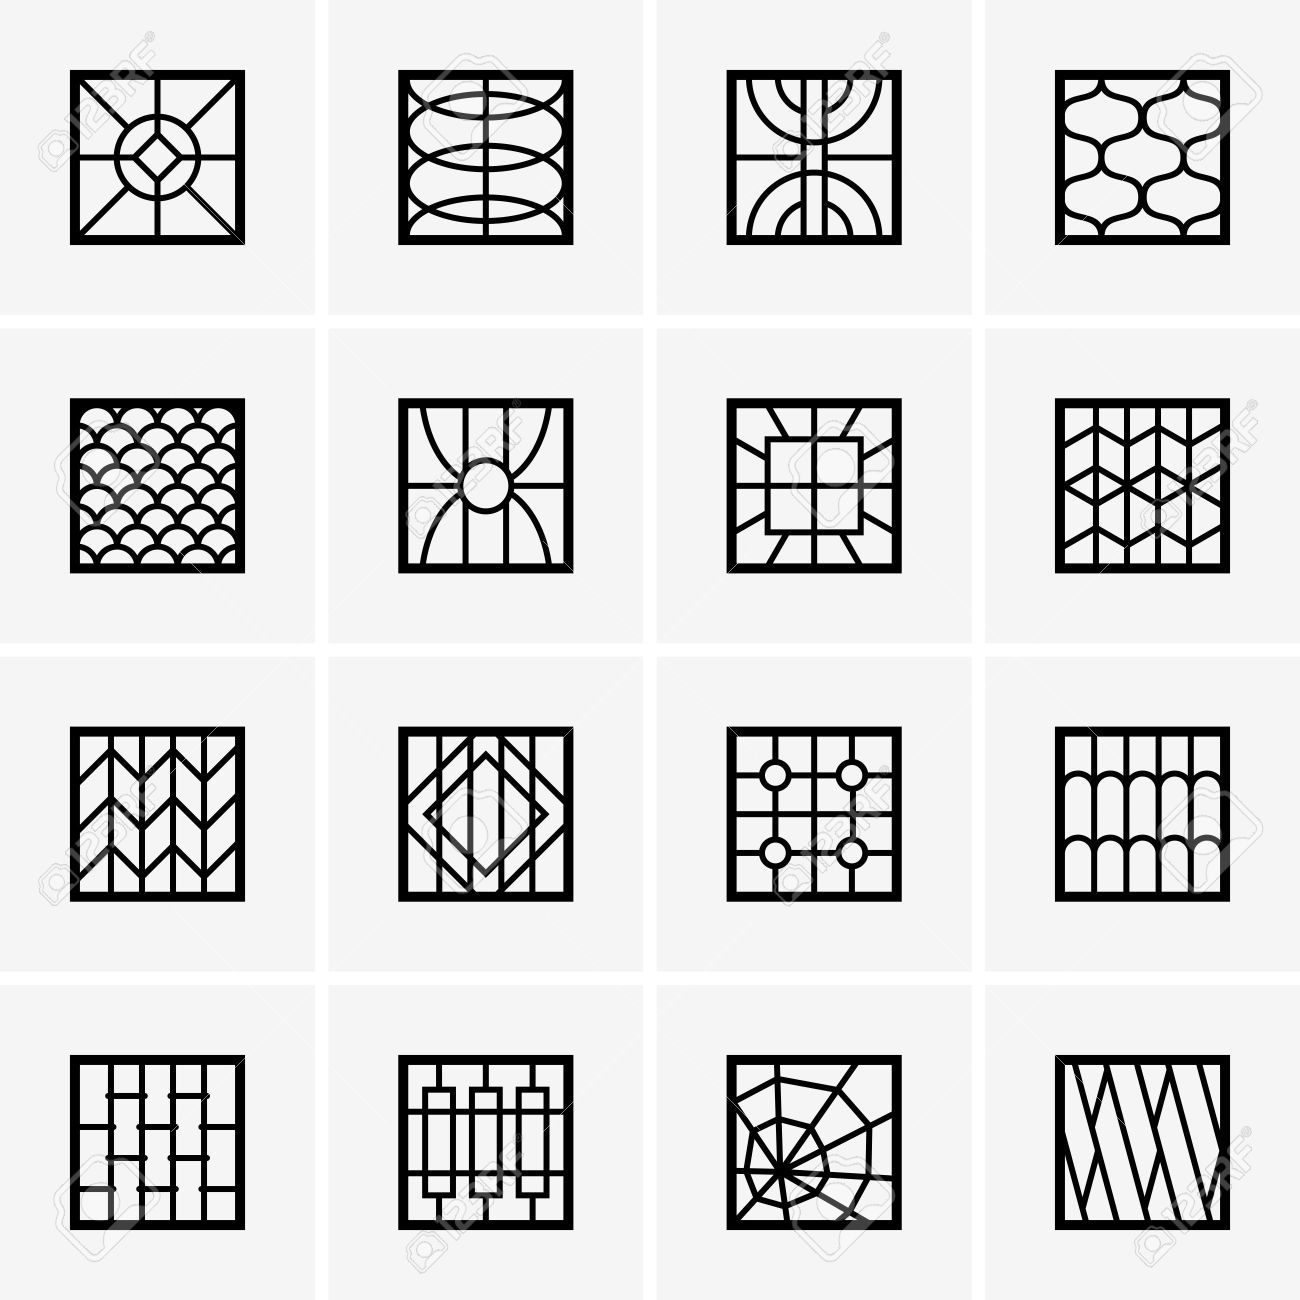 Modern window grills design google search self help pinterest window grill design grill - Modern window grills design ...